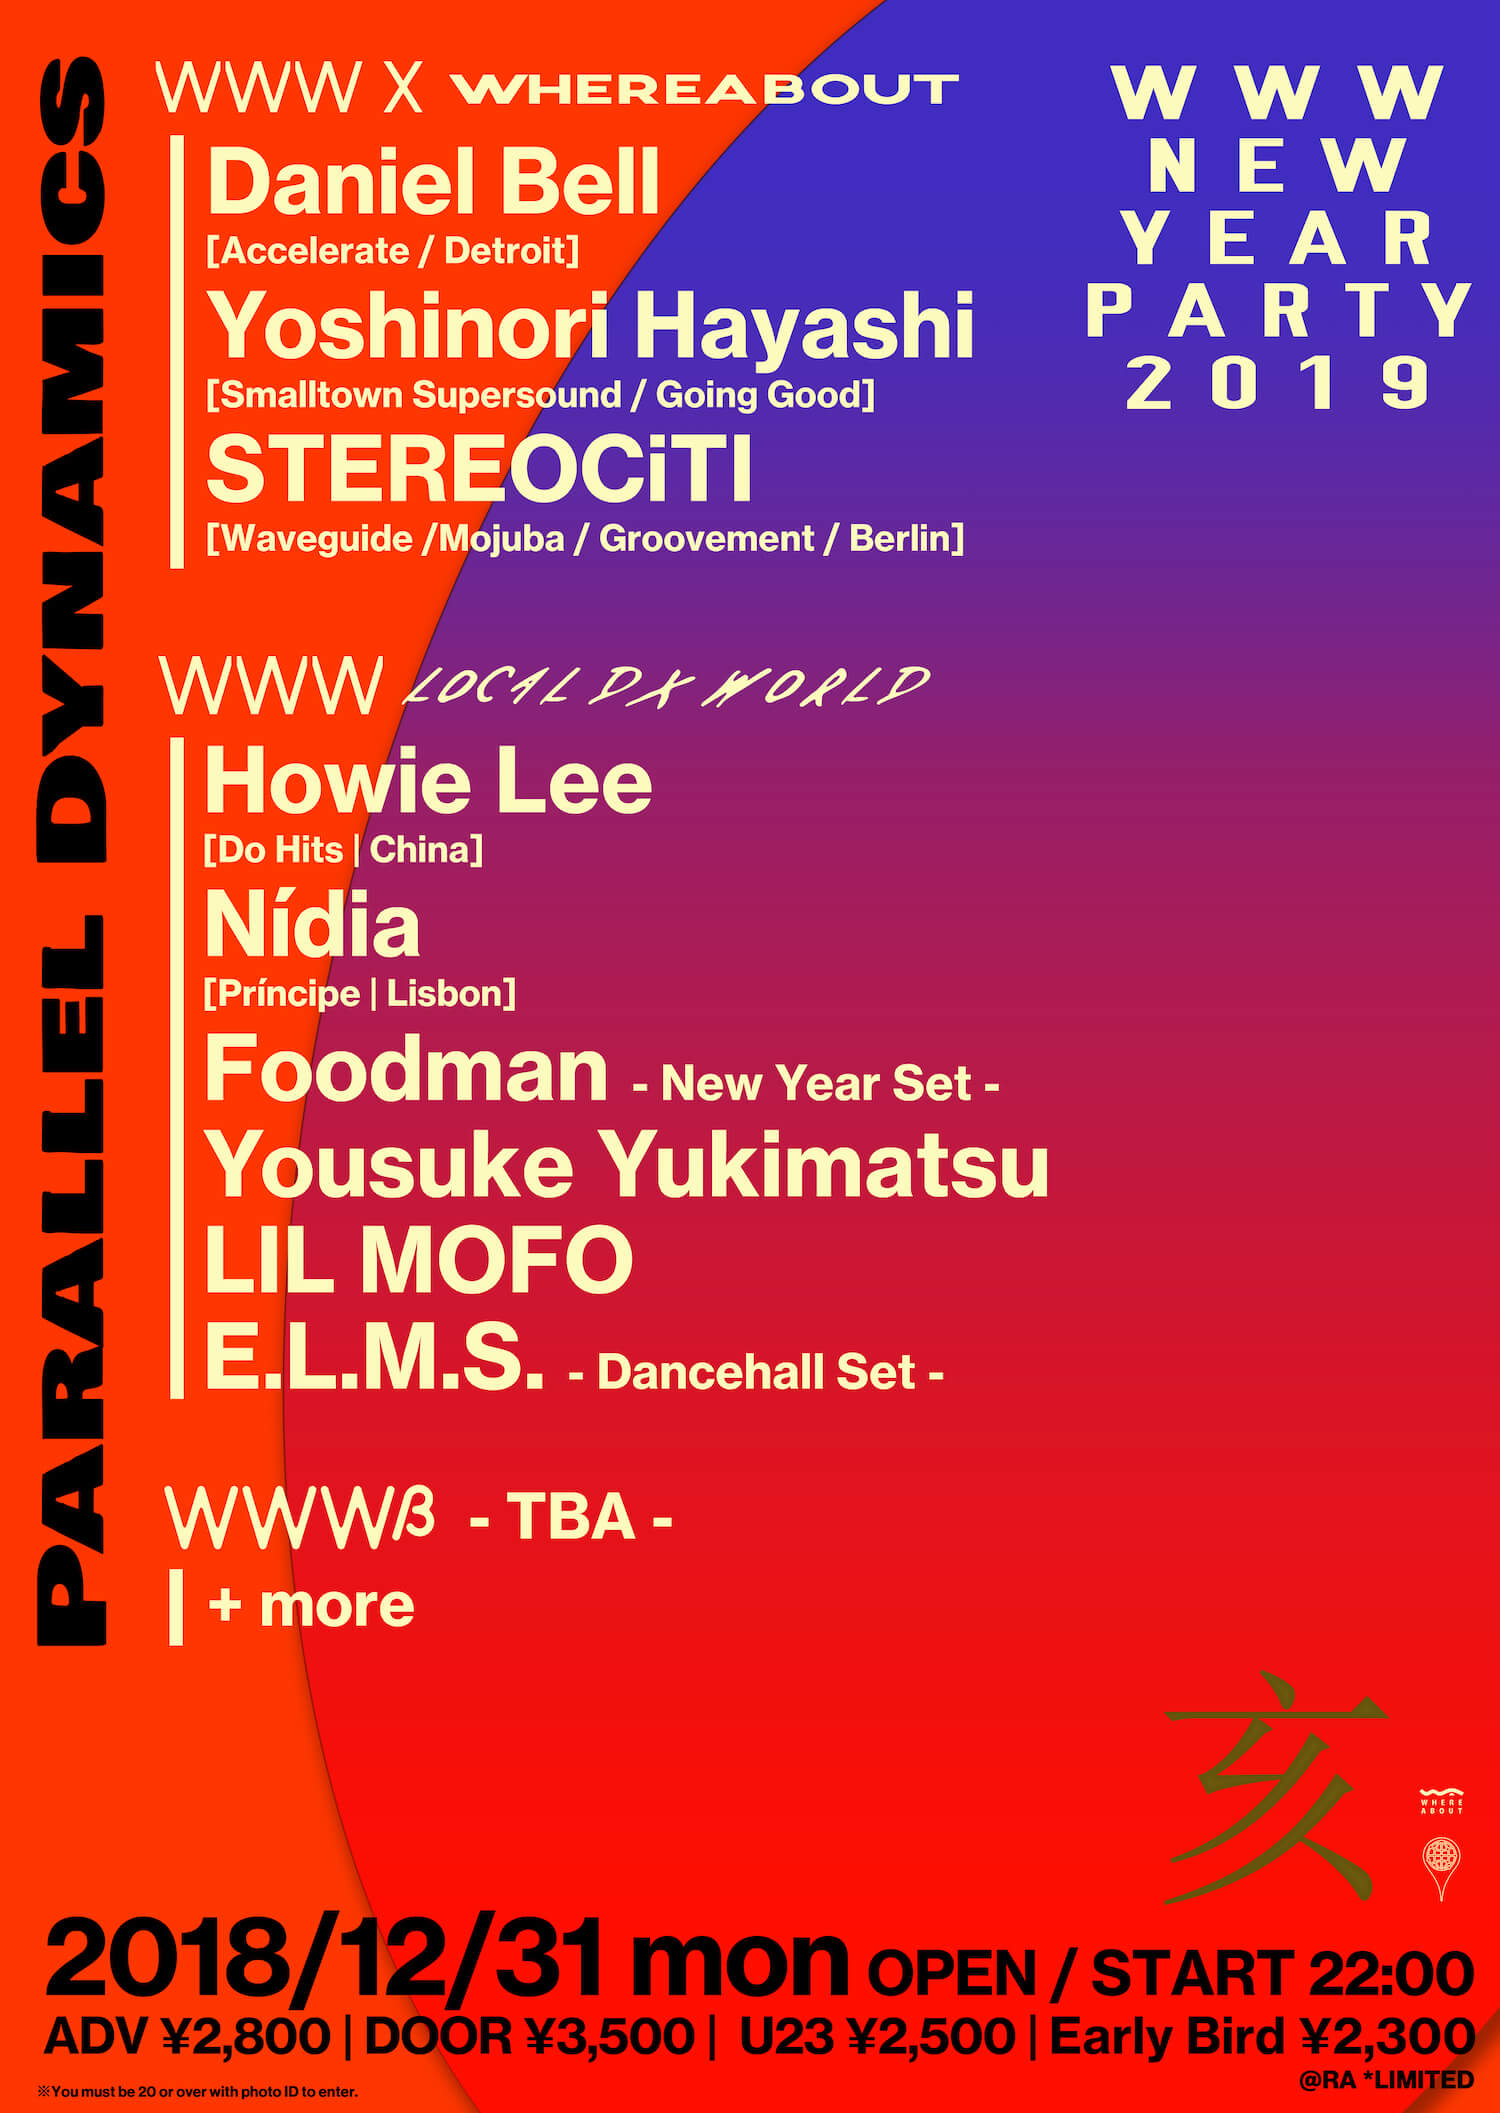 WWW New Year Party 2019 FIRST